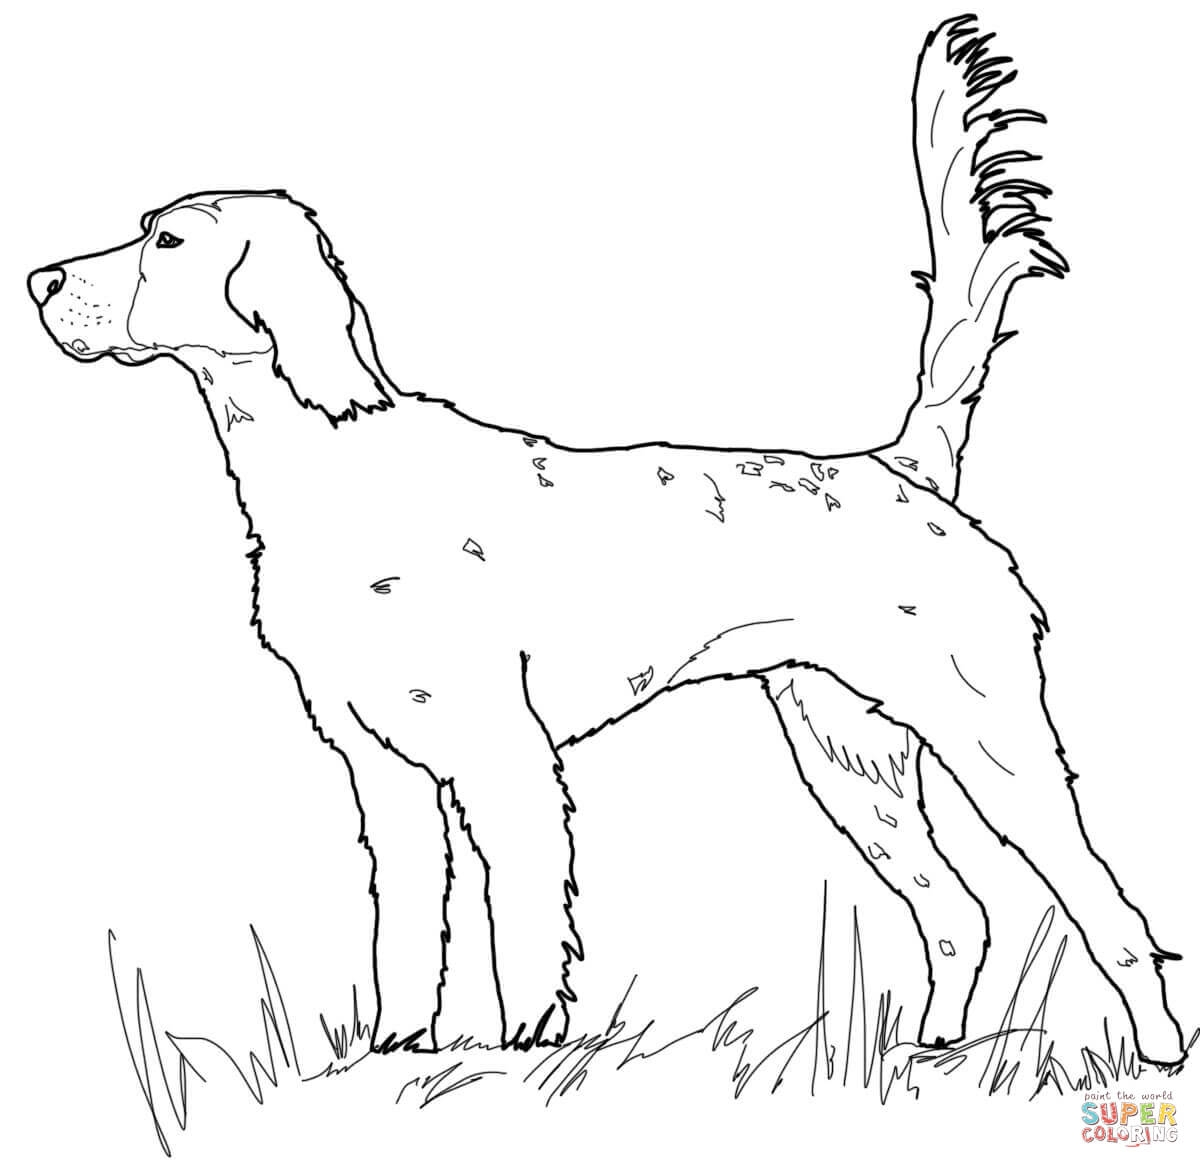 coyote coloring page - english setter